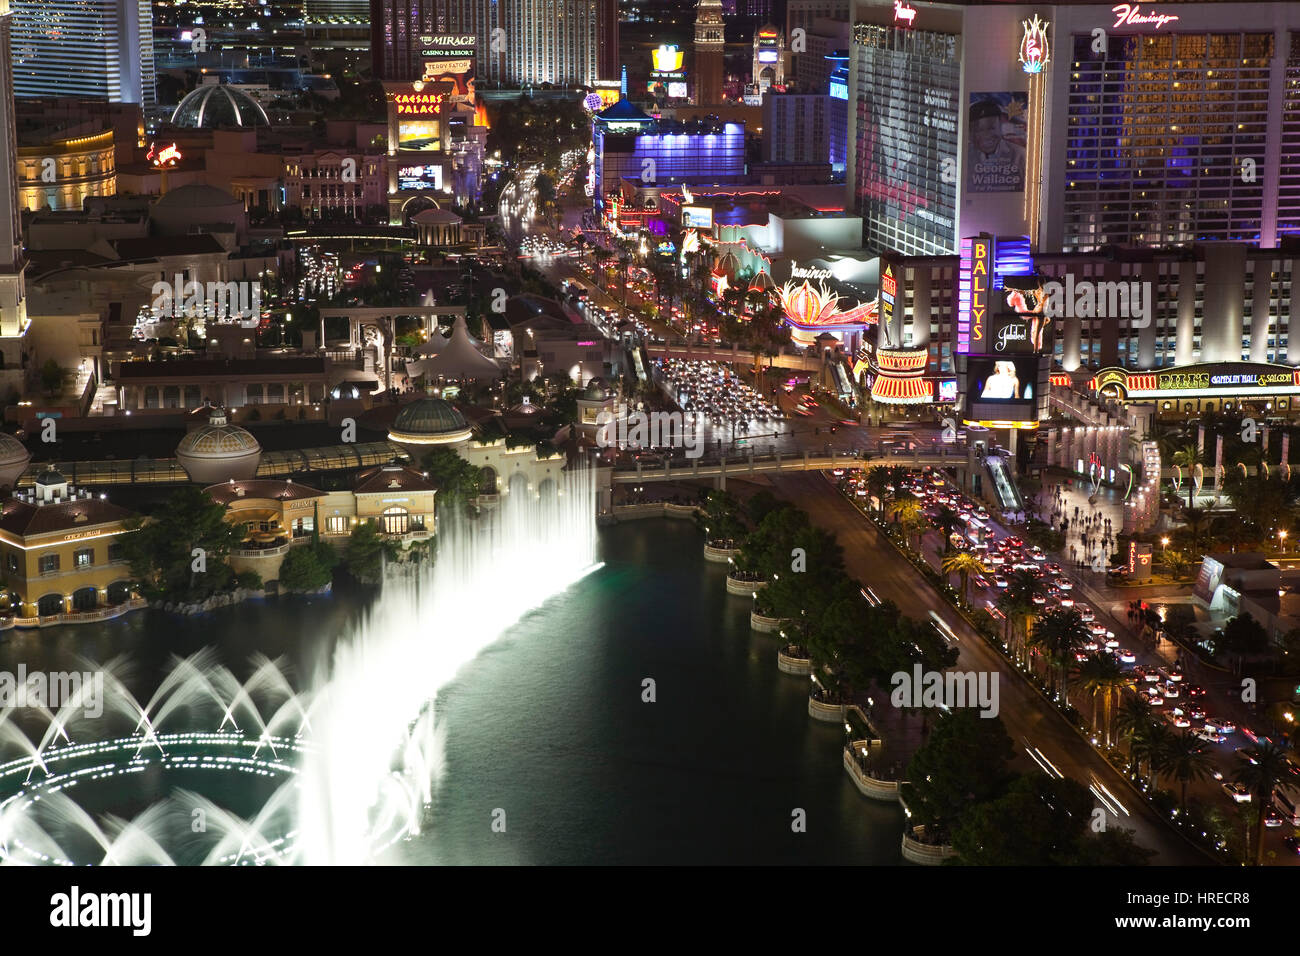 Las Vegas, Nevada, USA - October 6, 2011:  Fountains near Bellagio and Caesars Palace on the Las Vegas strip. - Stock Image